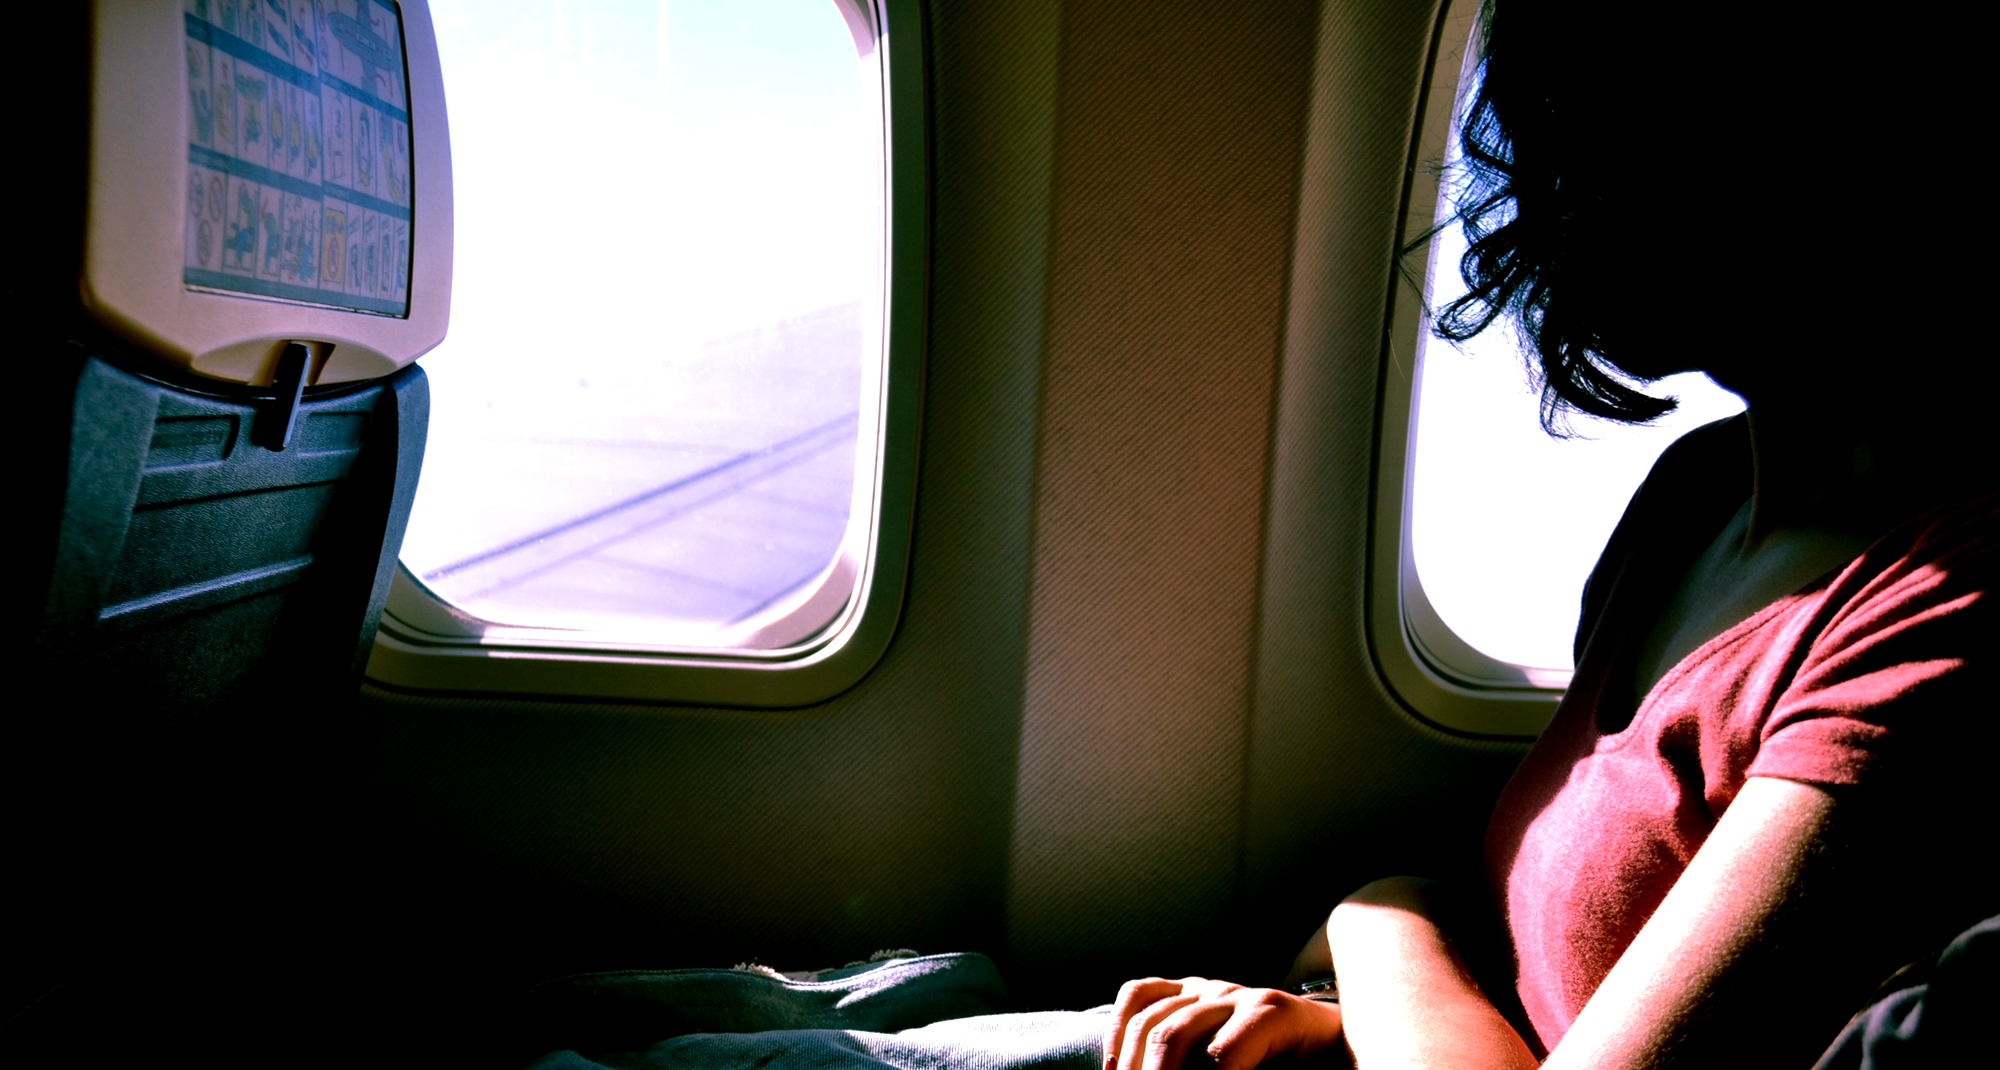 The gross reason you should never put your head on an airplane window